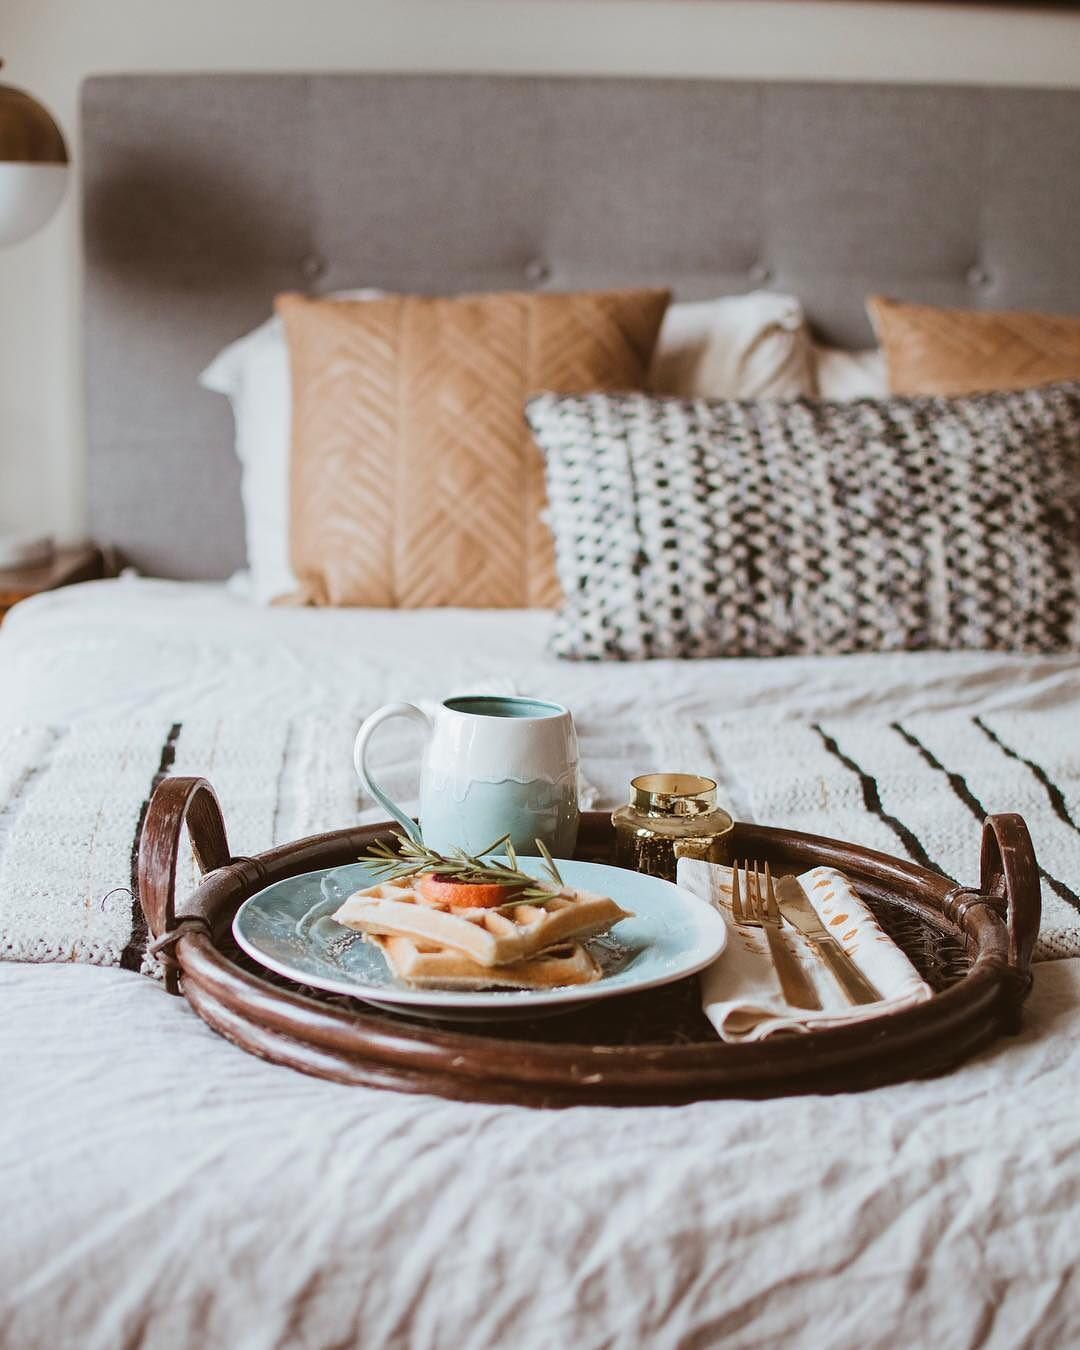 """12e7bd6fb70c Anthropologie Europe on Instagram: """"The only thing better than breakfast in  bed? Brunch in bed 🥞 Photo by @alenadavis (link in profile to shop)"""""""